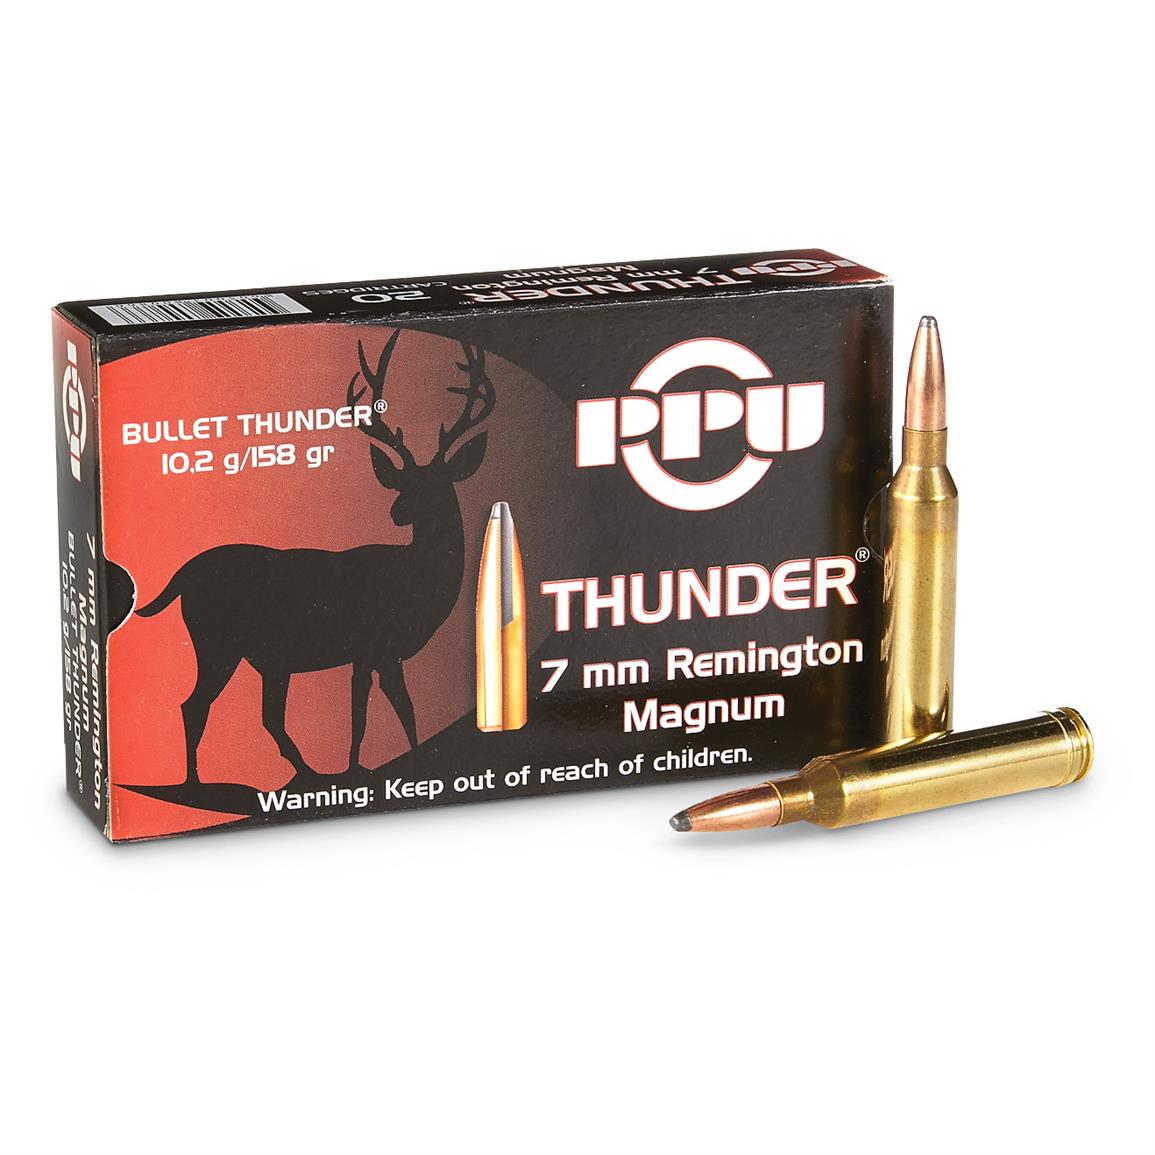 PPU Thunder® 7mm Rem.® Mag. 158 Grain Rifle Ammo, 20 Rounds